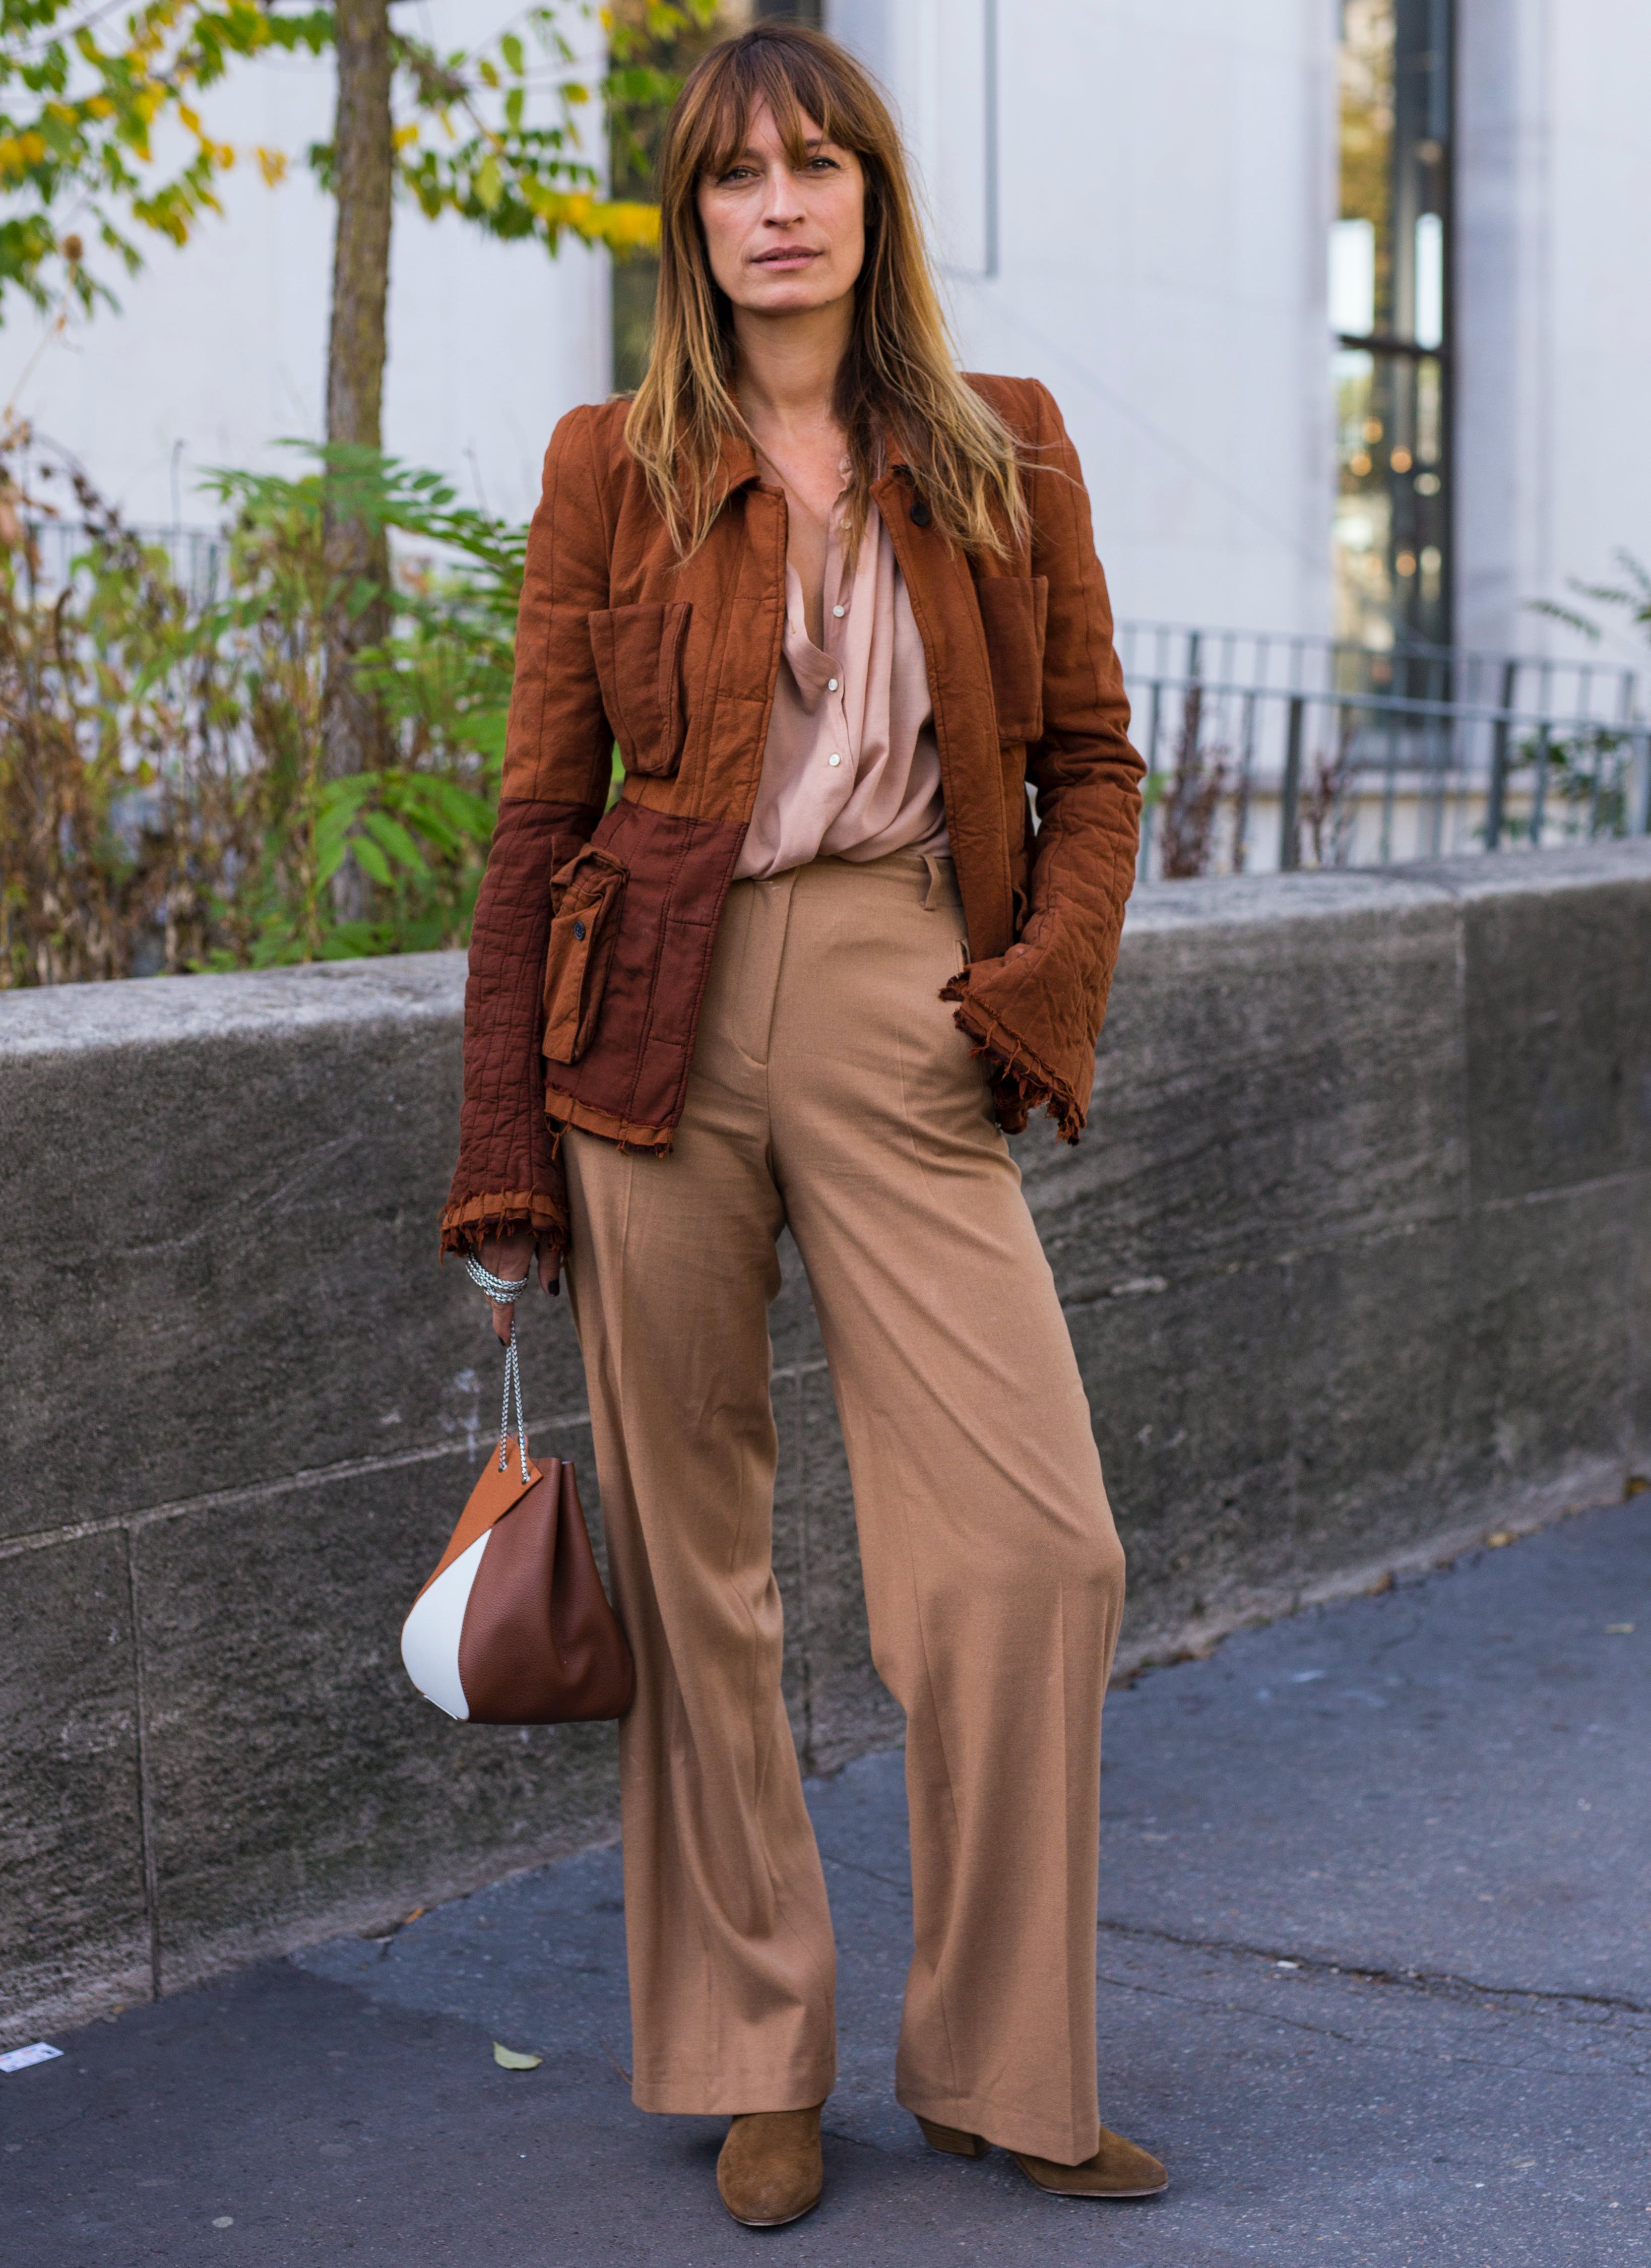 woman wearing shades of brown